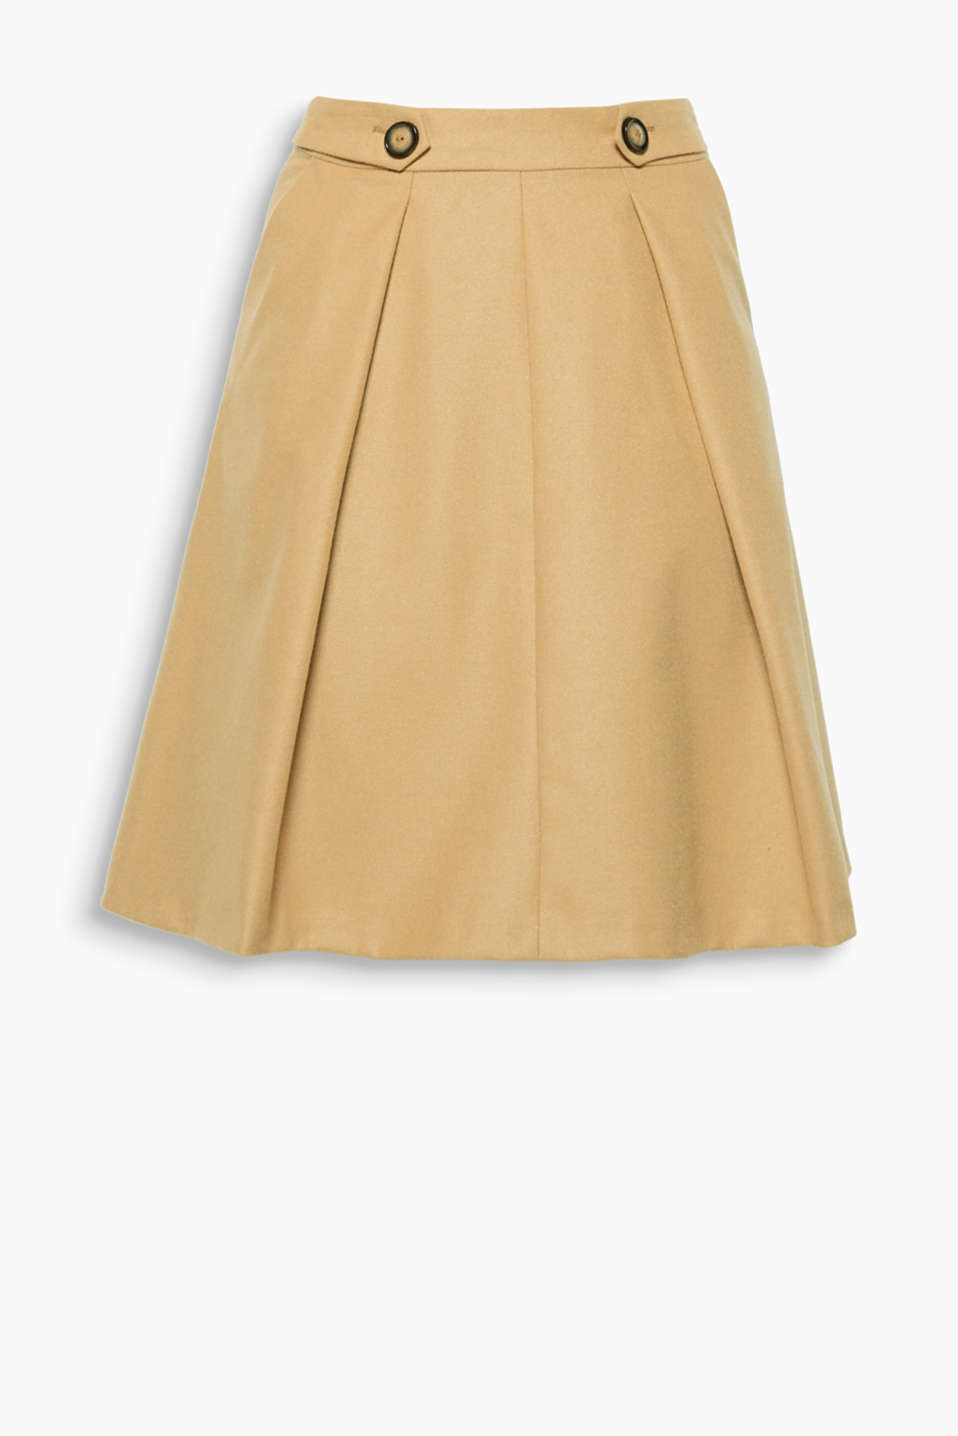 The inset pleats and waist straps + decorative buttons give this flared skirt its retro charm!